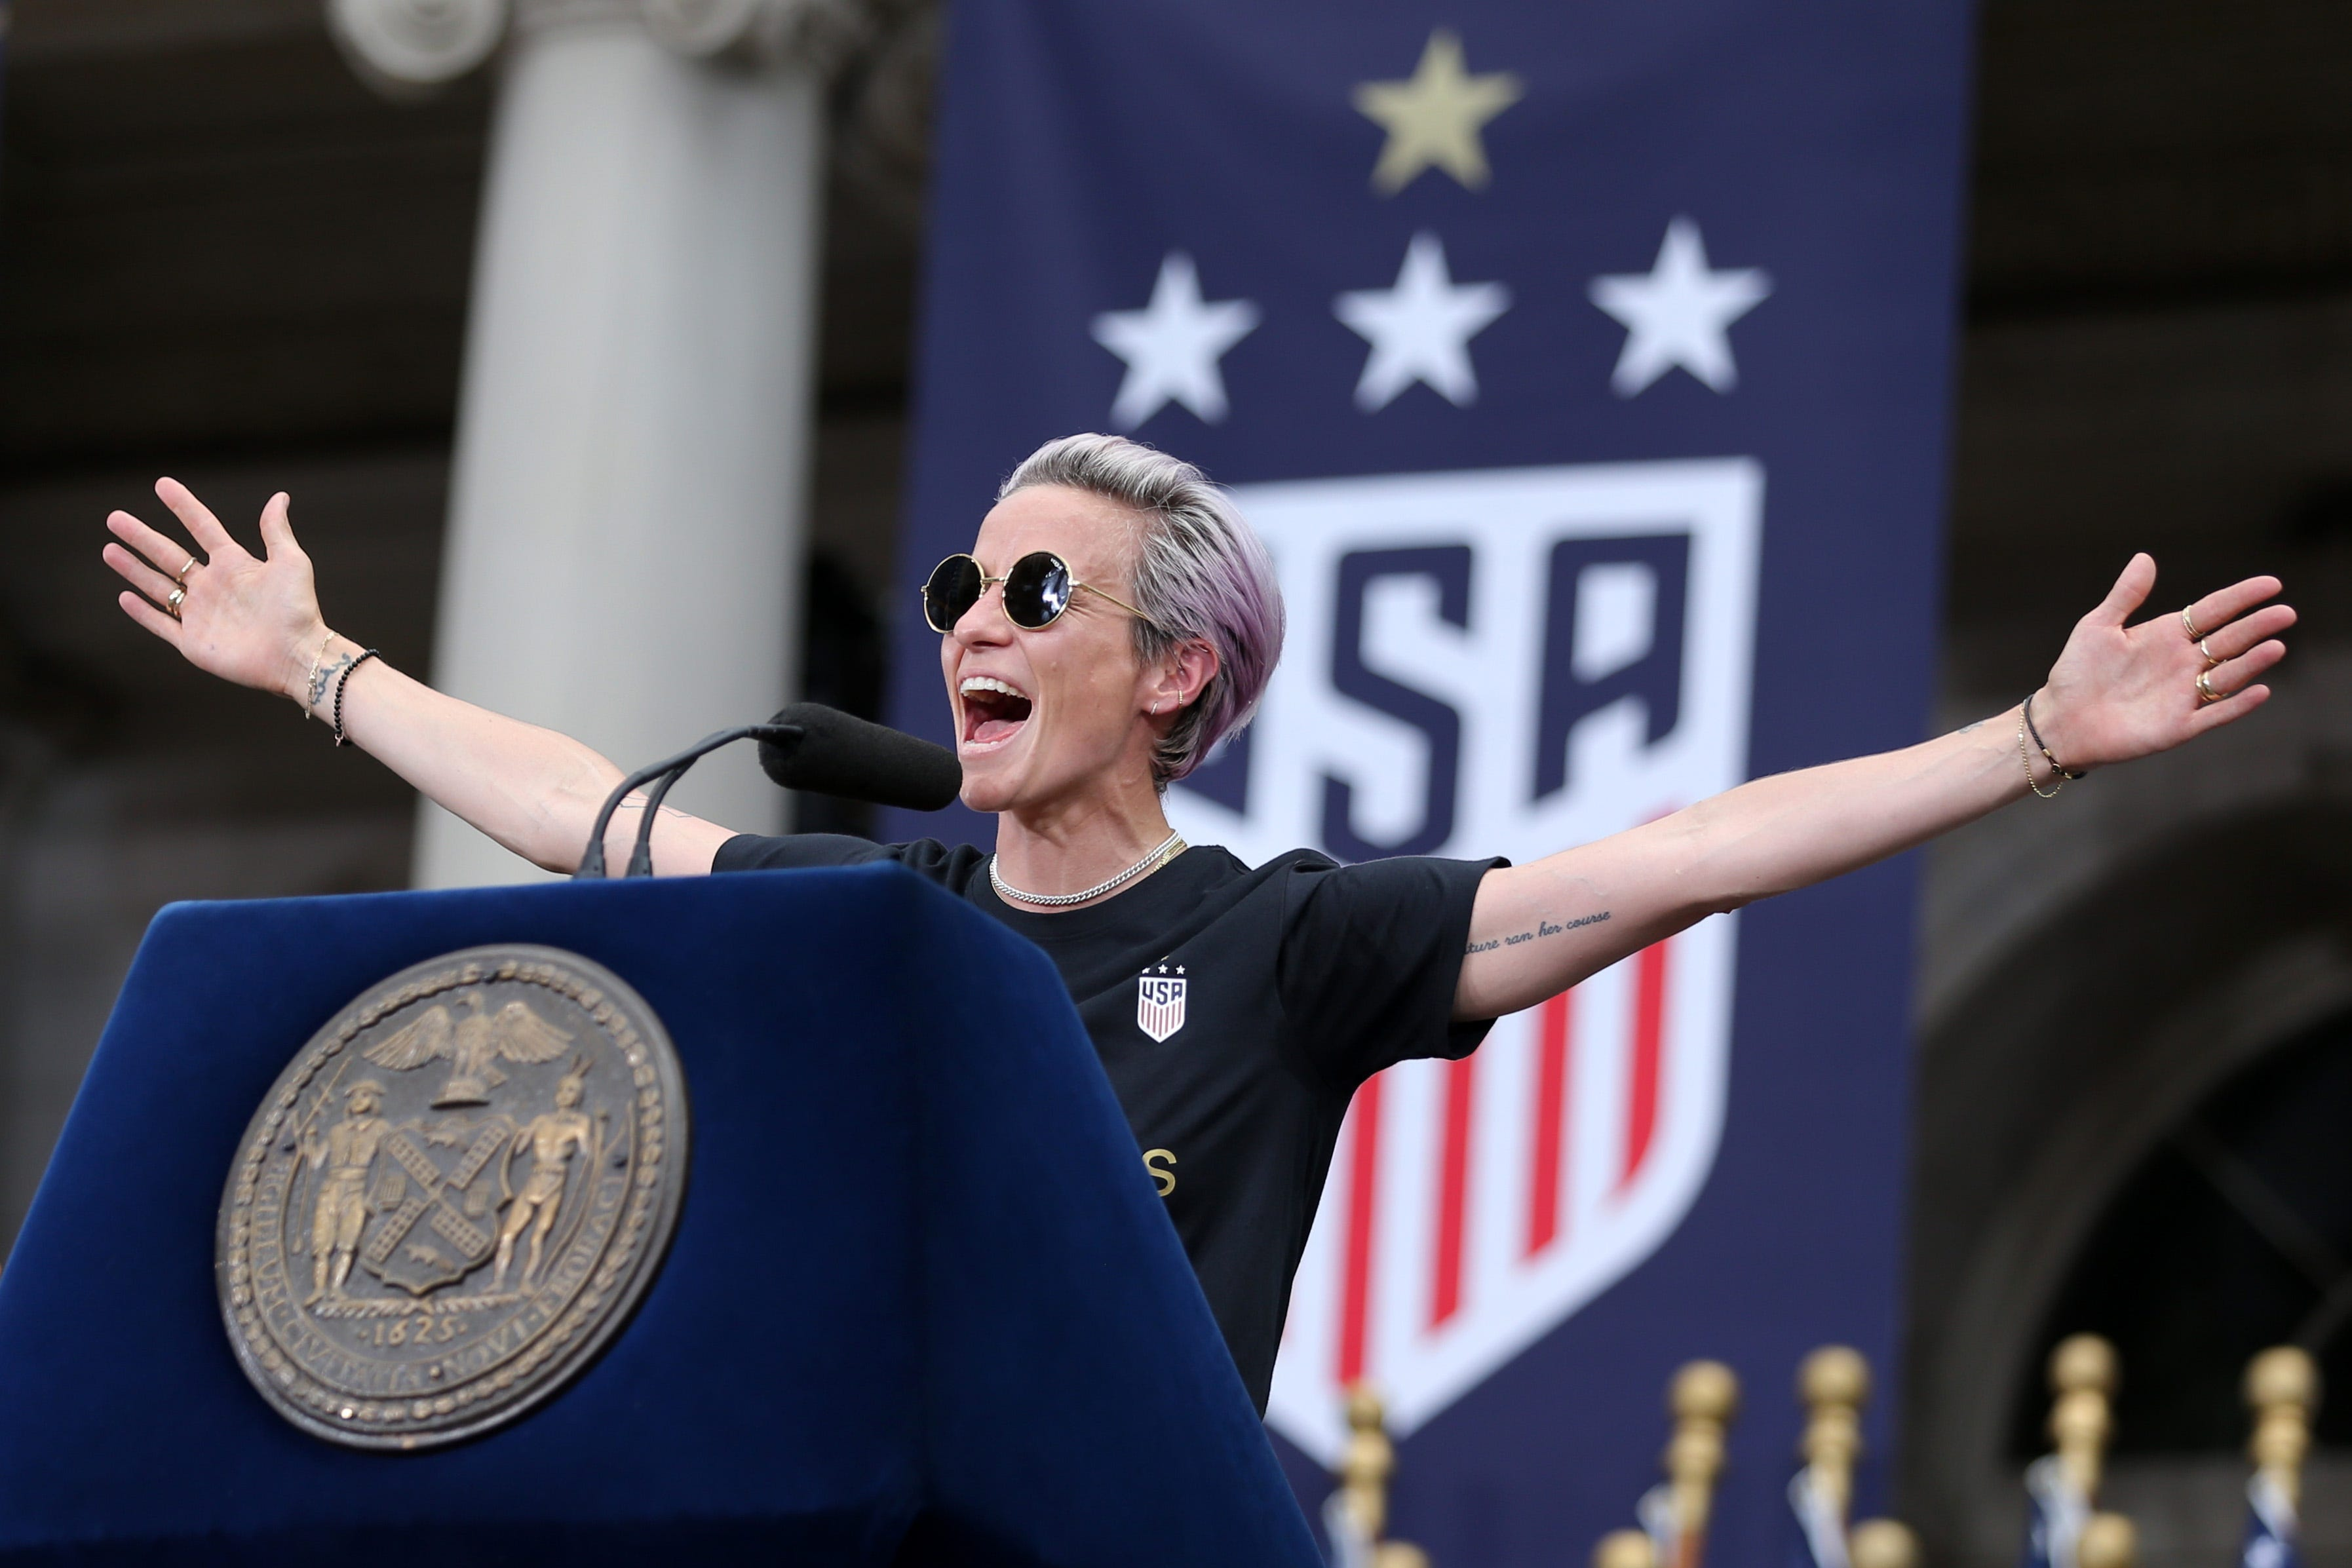 Don t bring that (expletive) here : Megan Rapinoe reacts to photo of U.S. Capitol rioter wearing USWNT sweatshirt